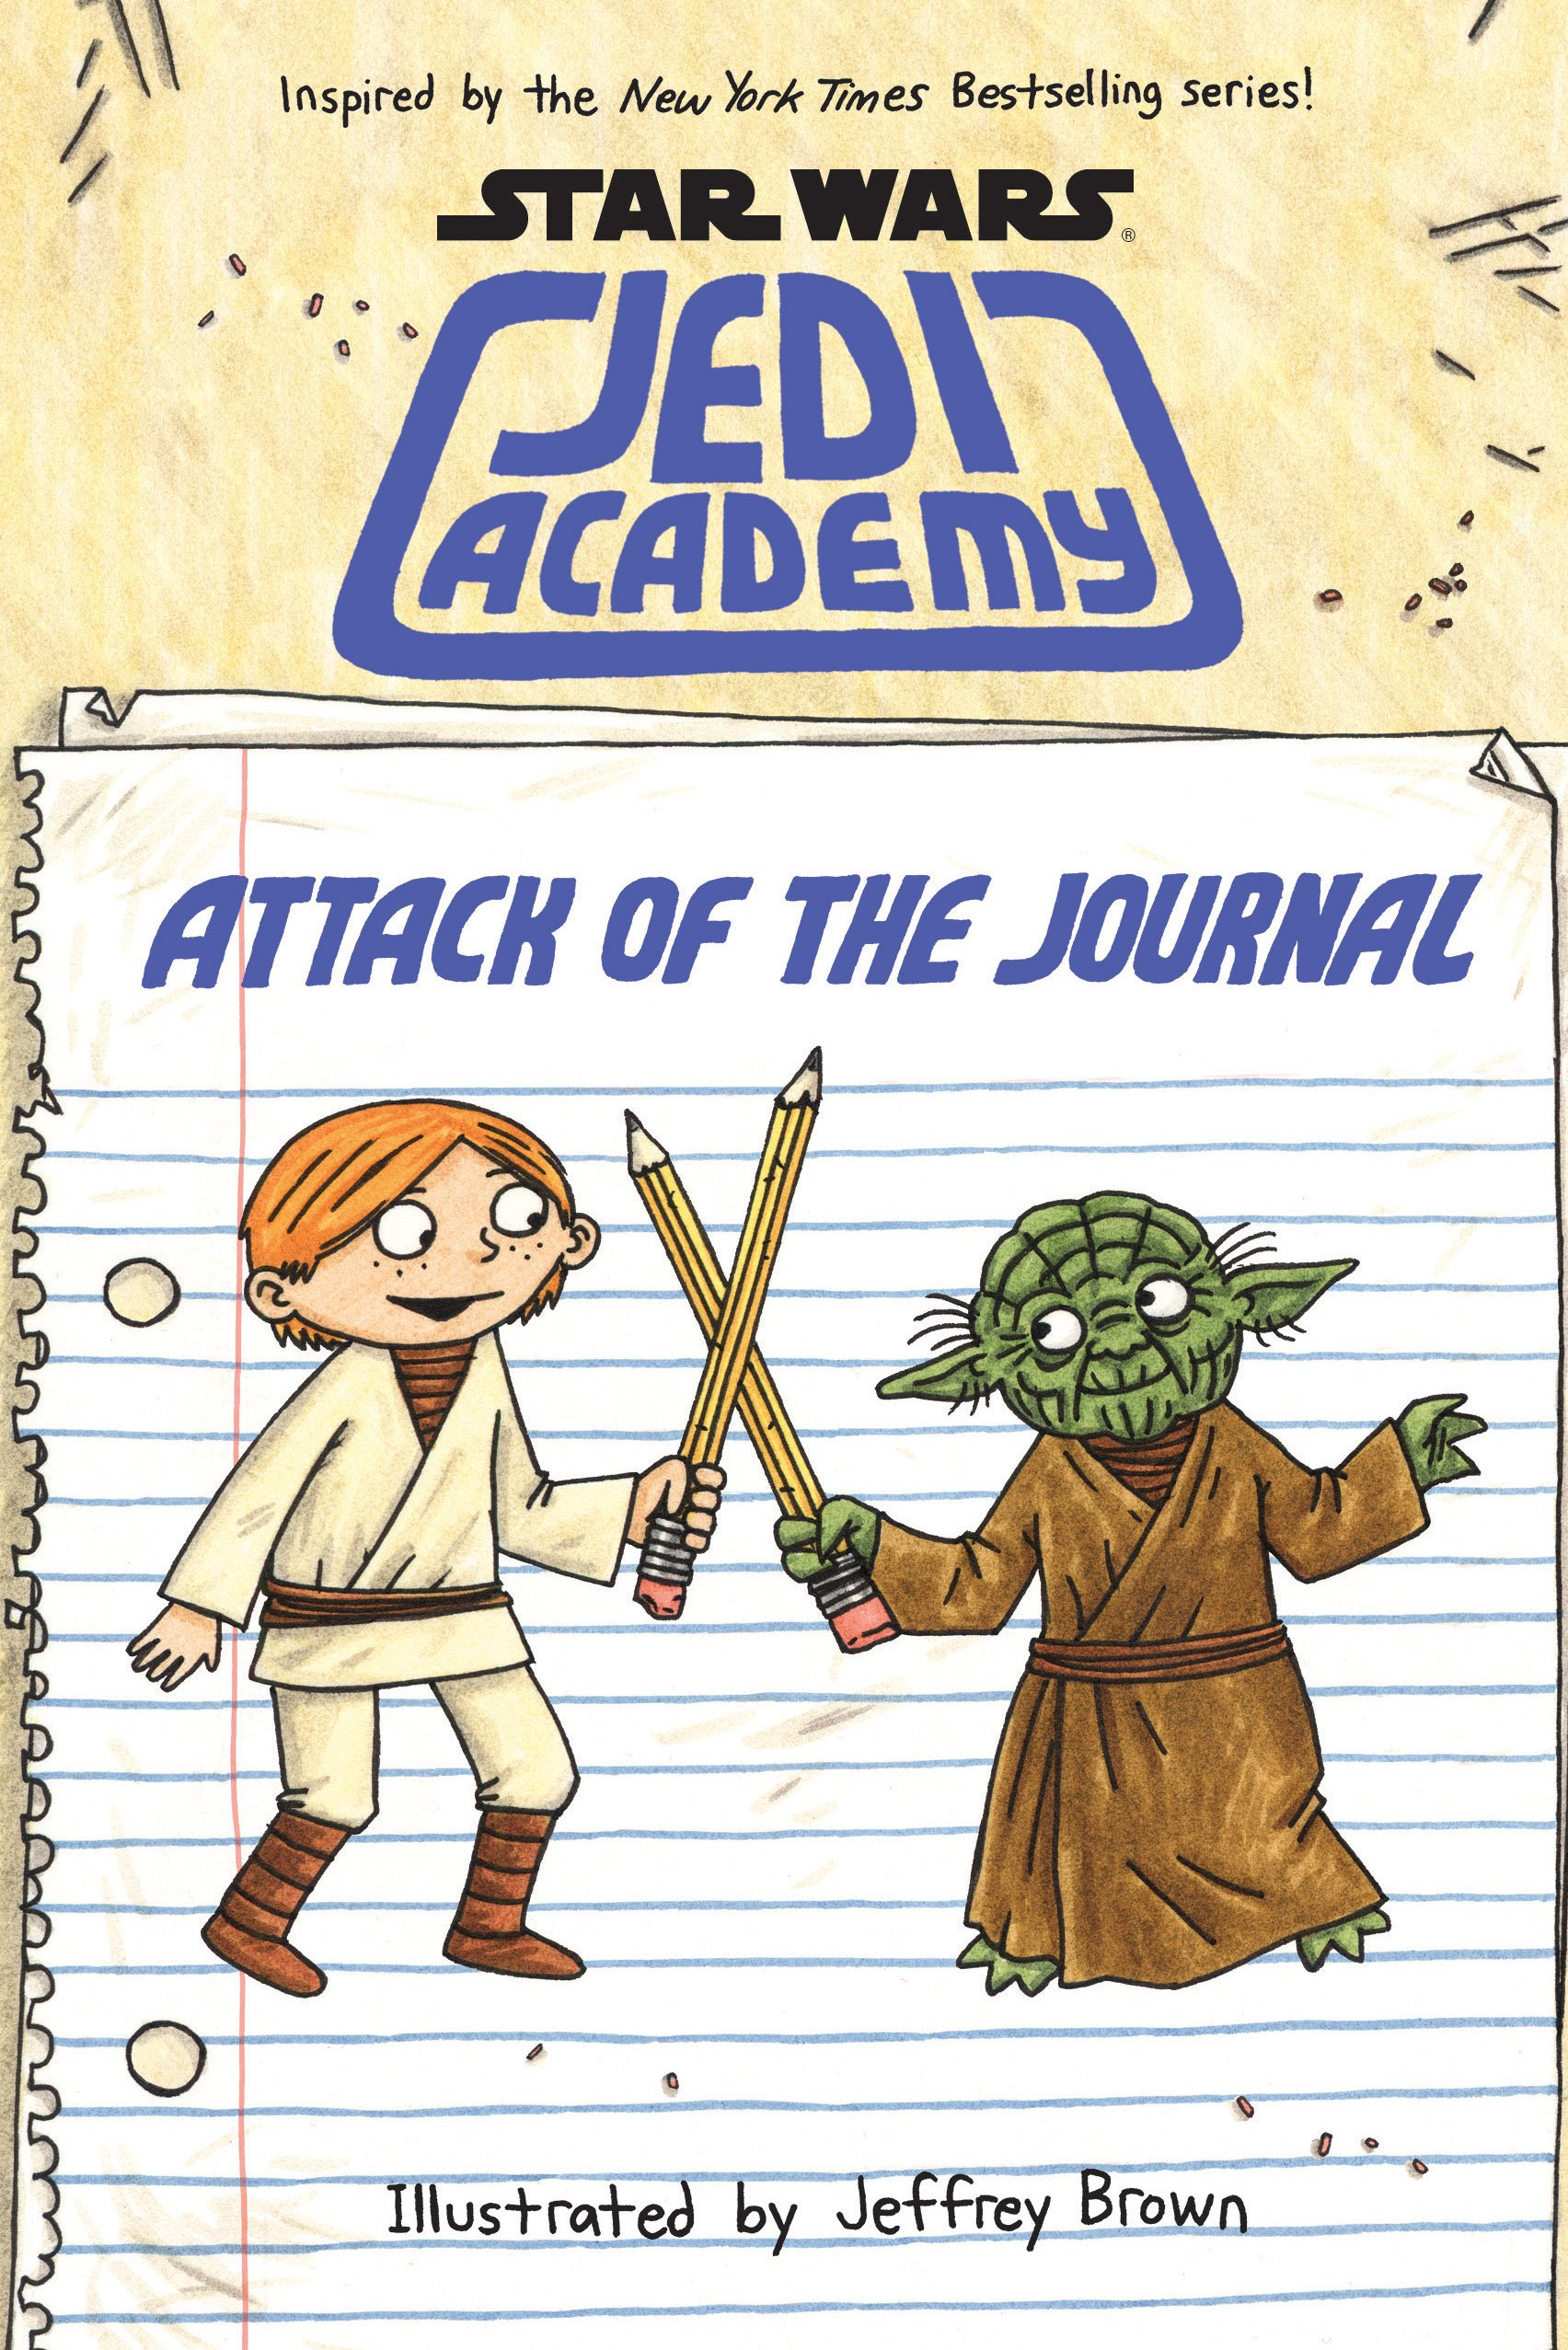 Jedi Academy: Attack of the Journal